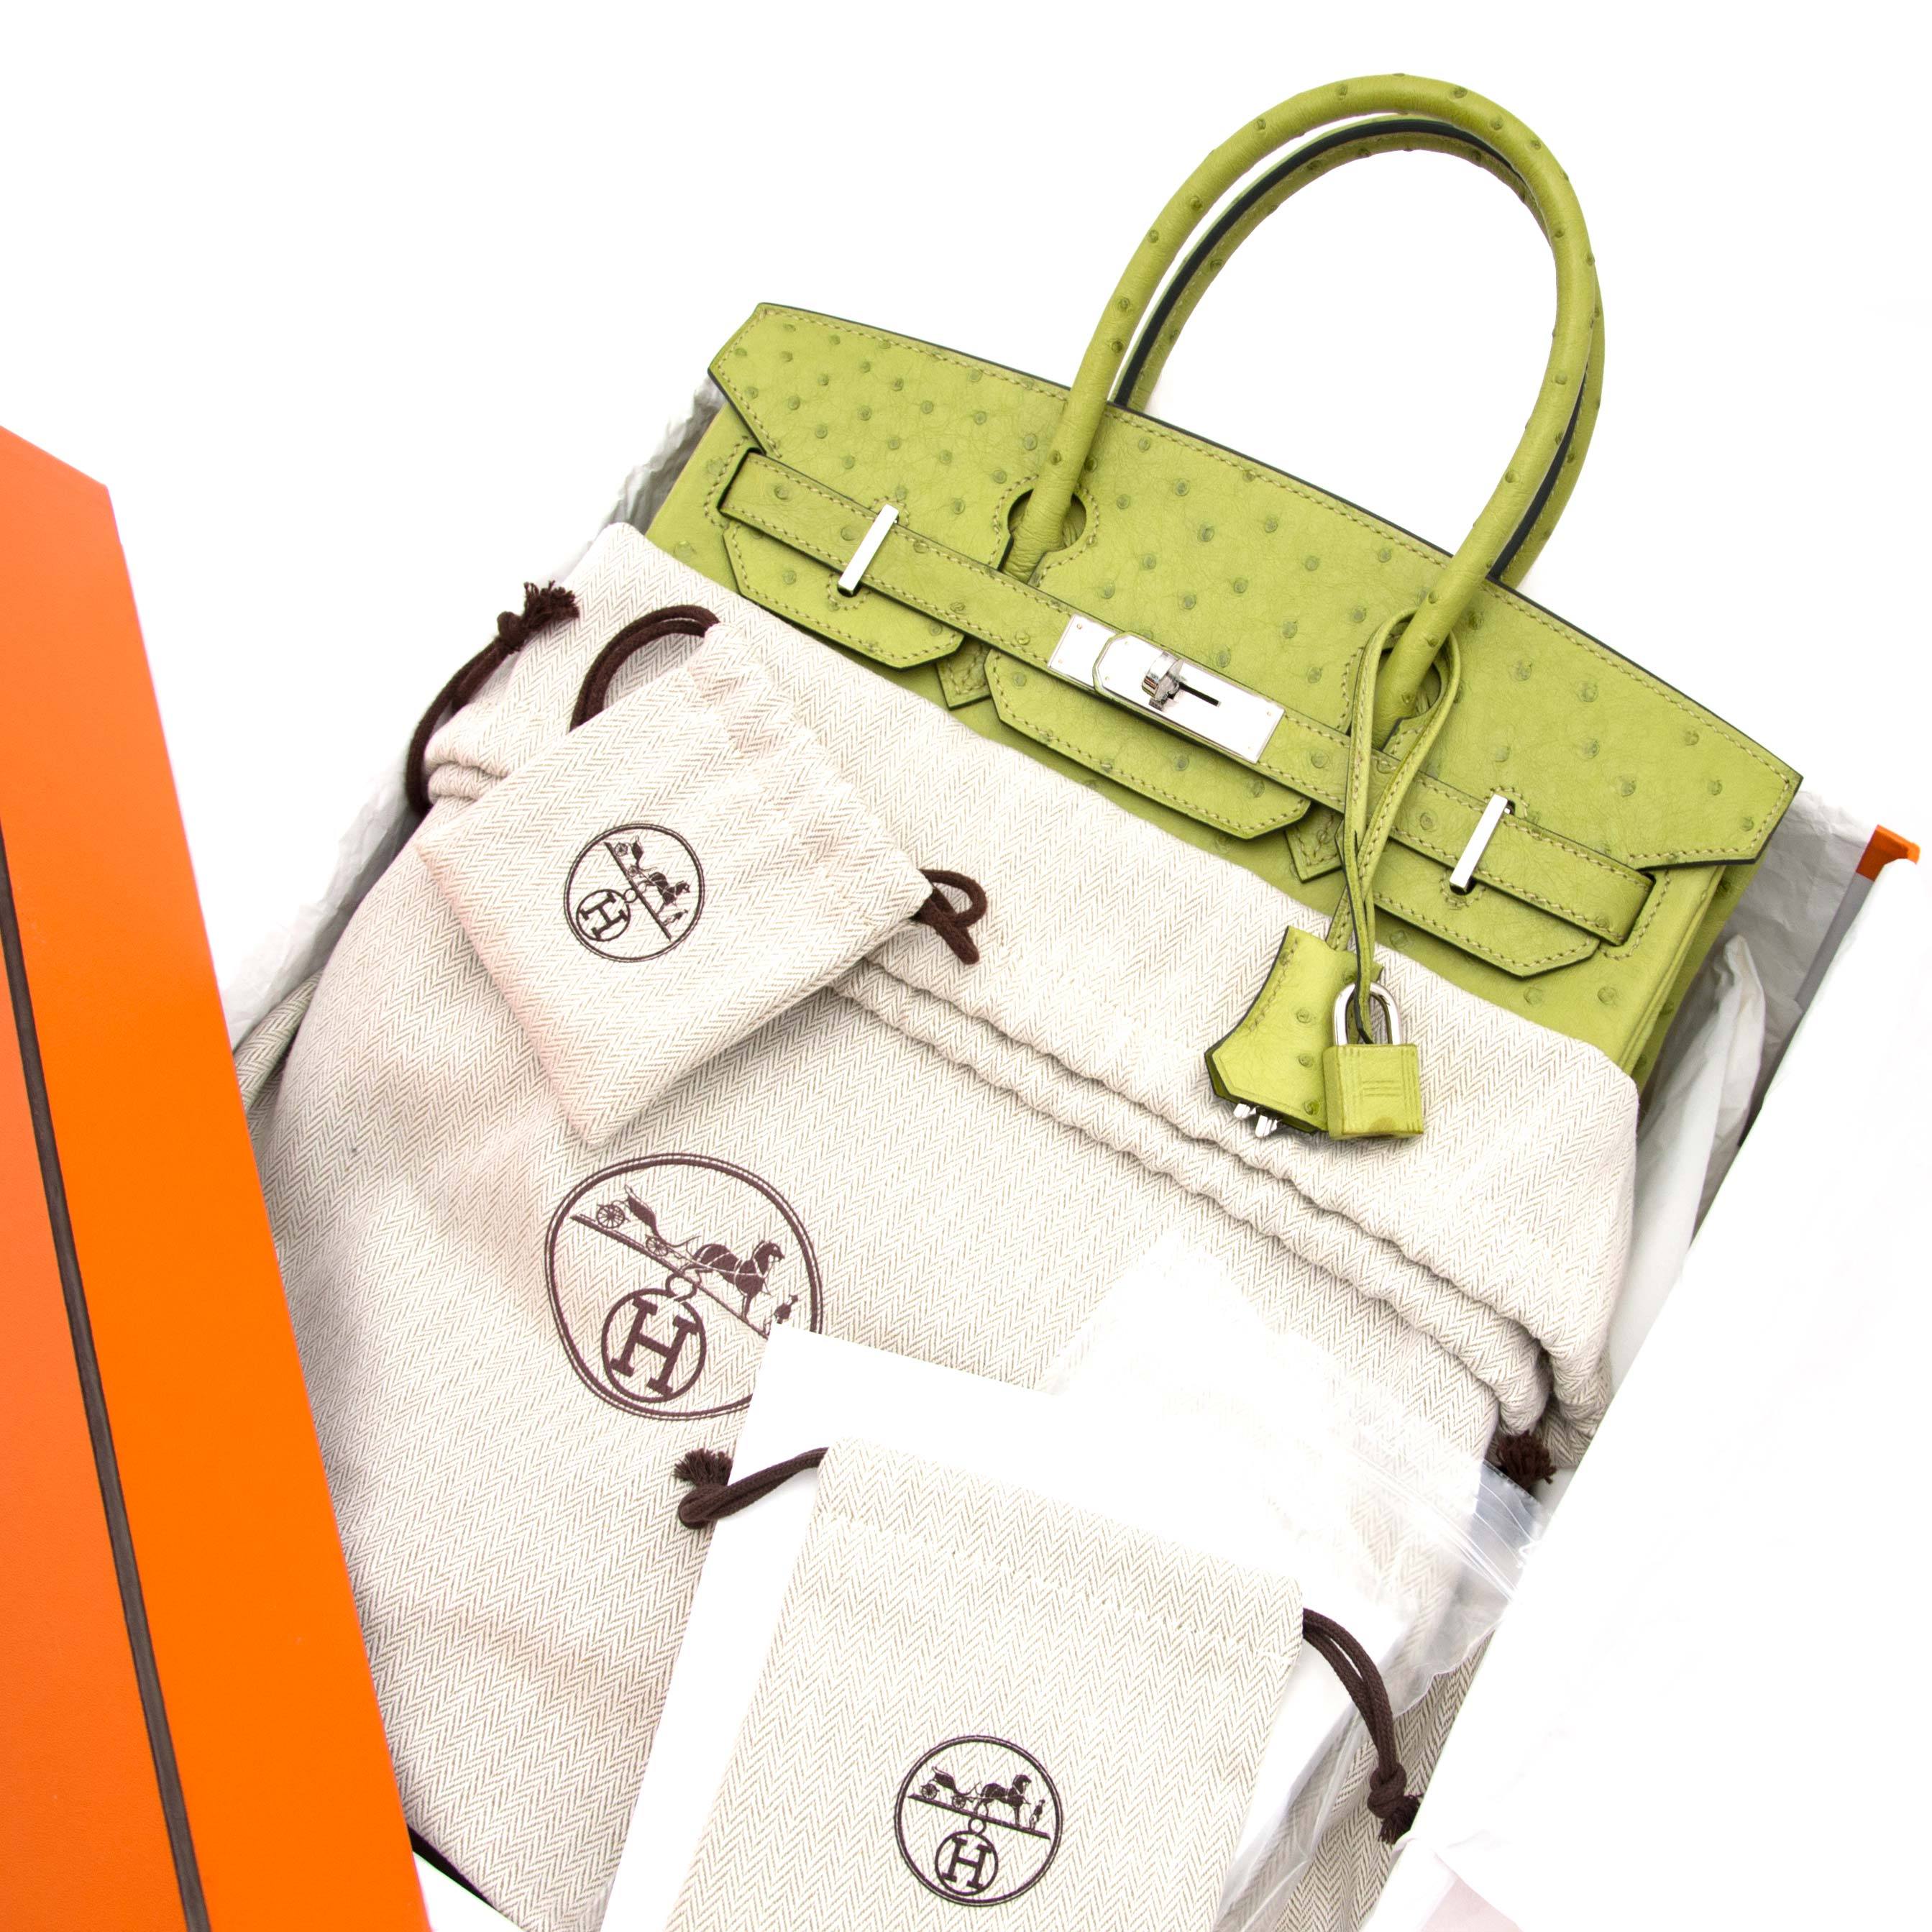 8c43478b5032 ... buy safe and secure online at labellov.com and get your hermes birkin  30 ostrich